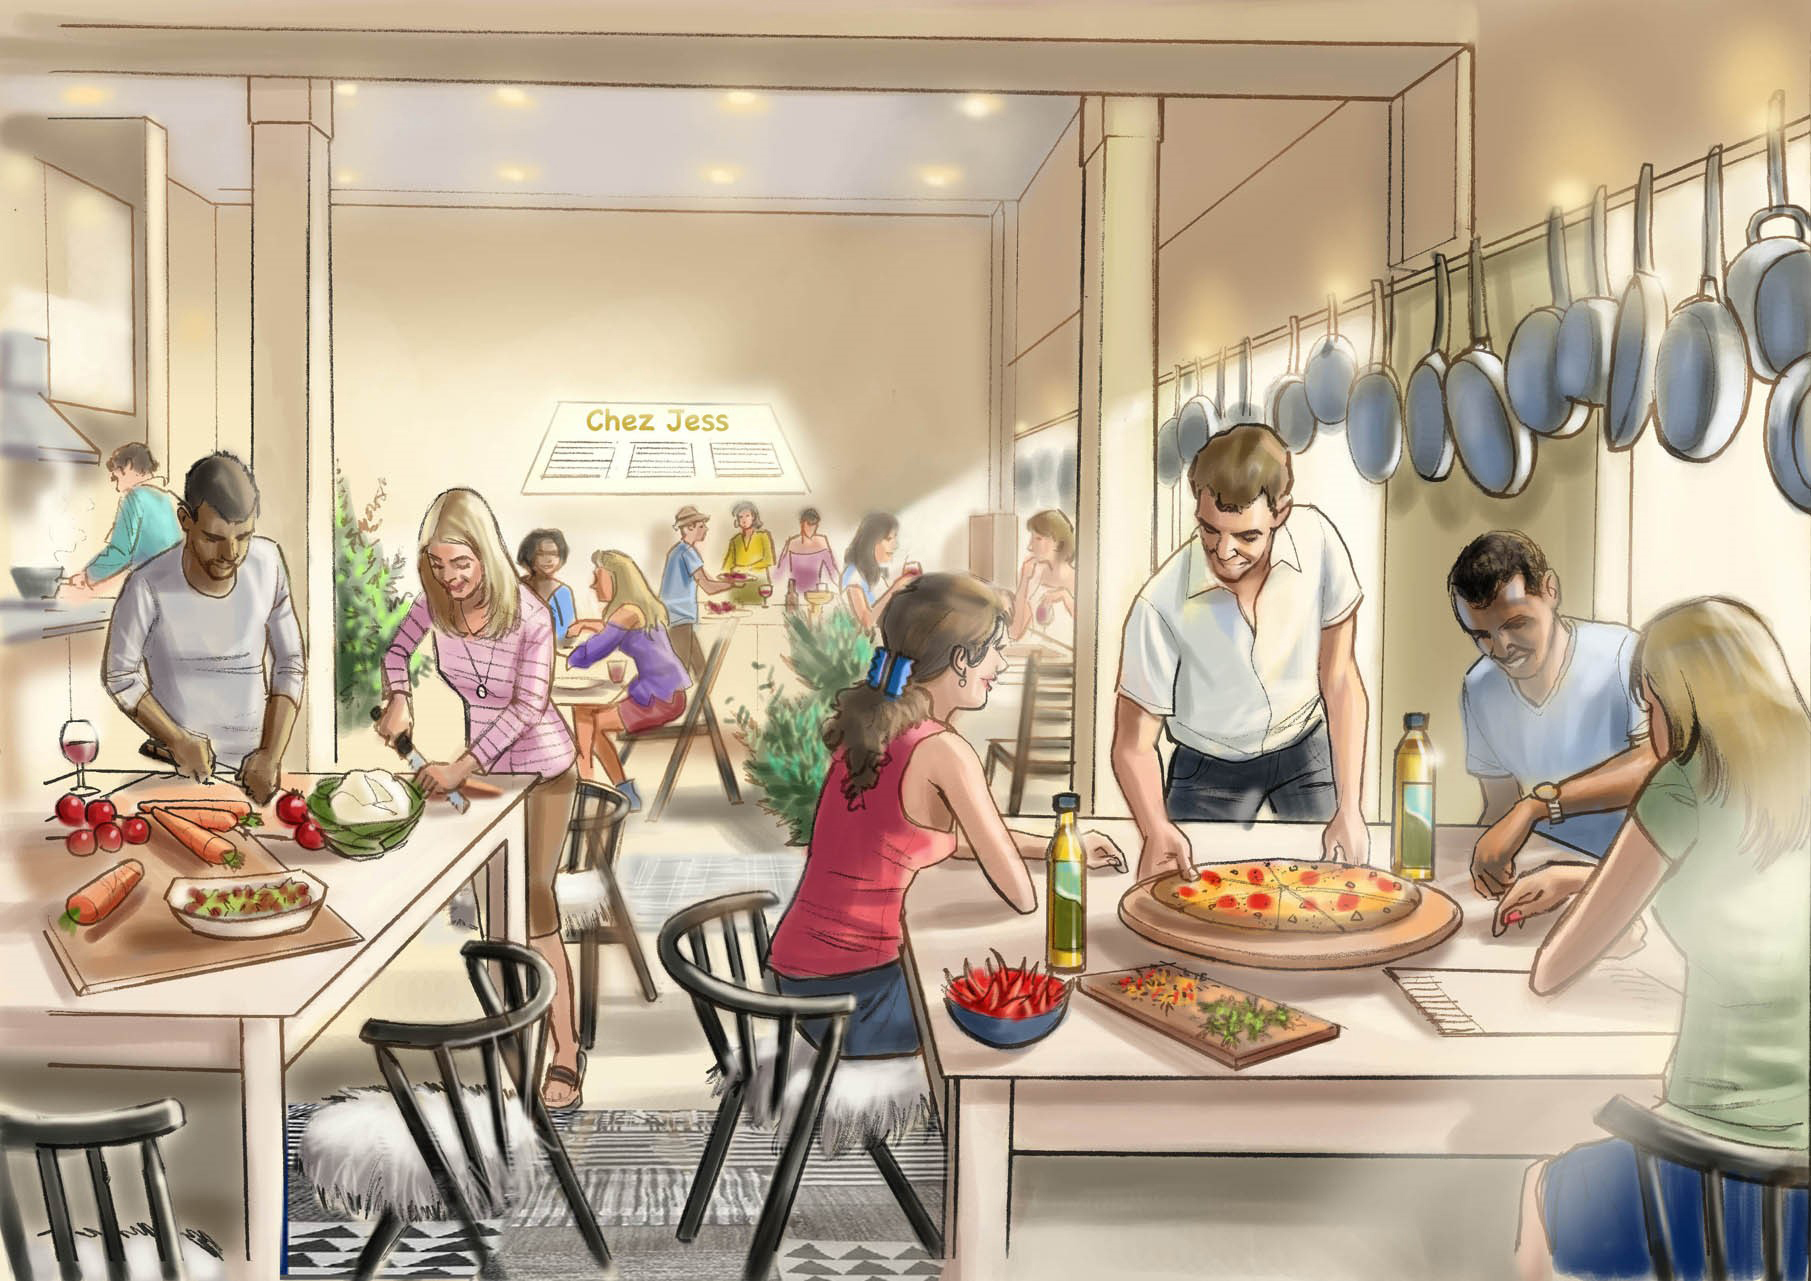 Swedish retailer IKEA is opening a fully immersive dining experience in Shoreditch – a 'Do-it-Yourself Restaurant' where the diners run the diner, becoming the star chefs in their very own restaurant.